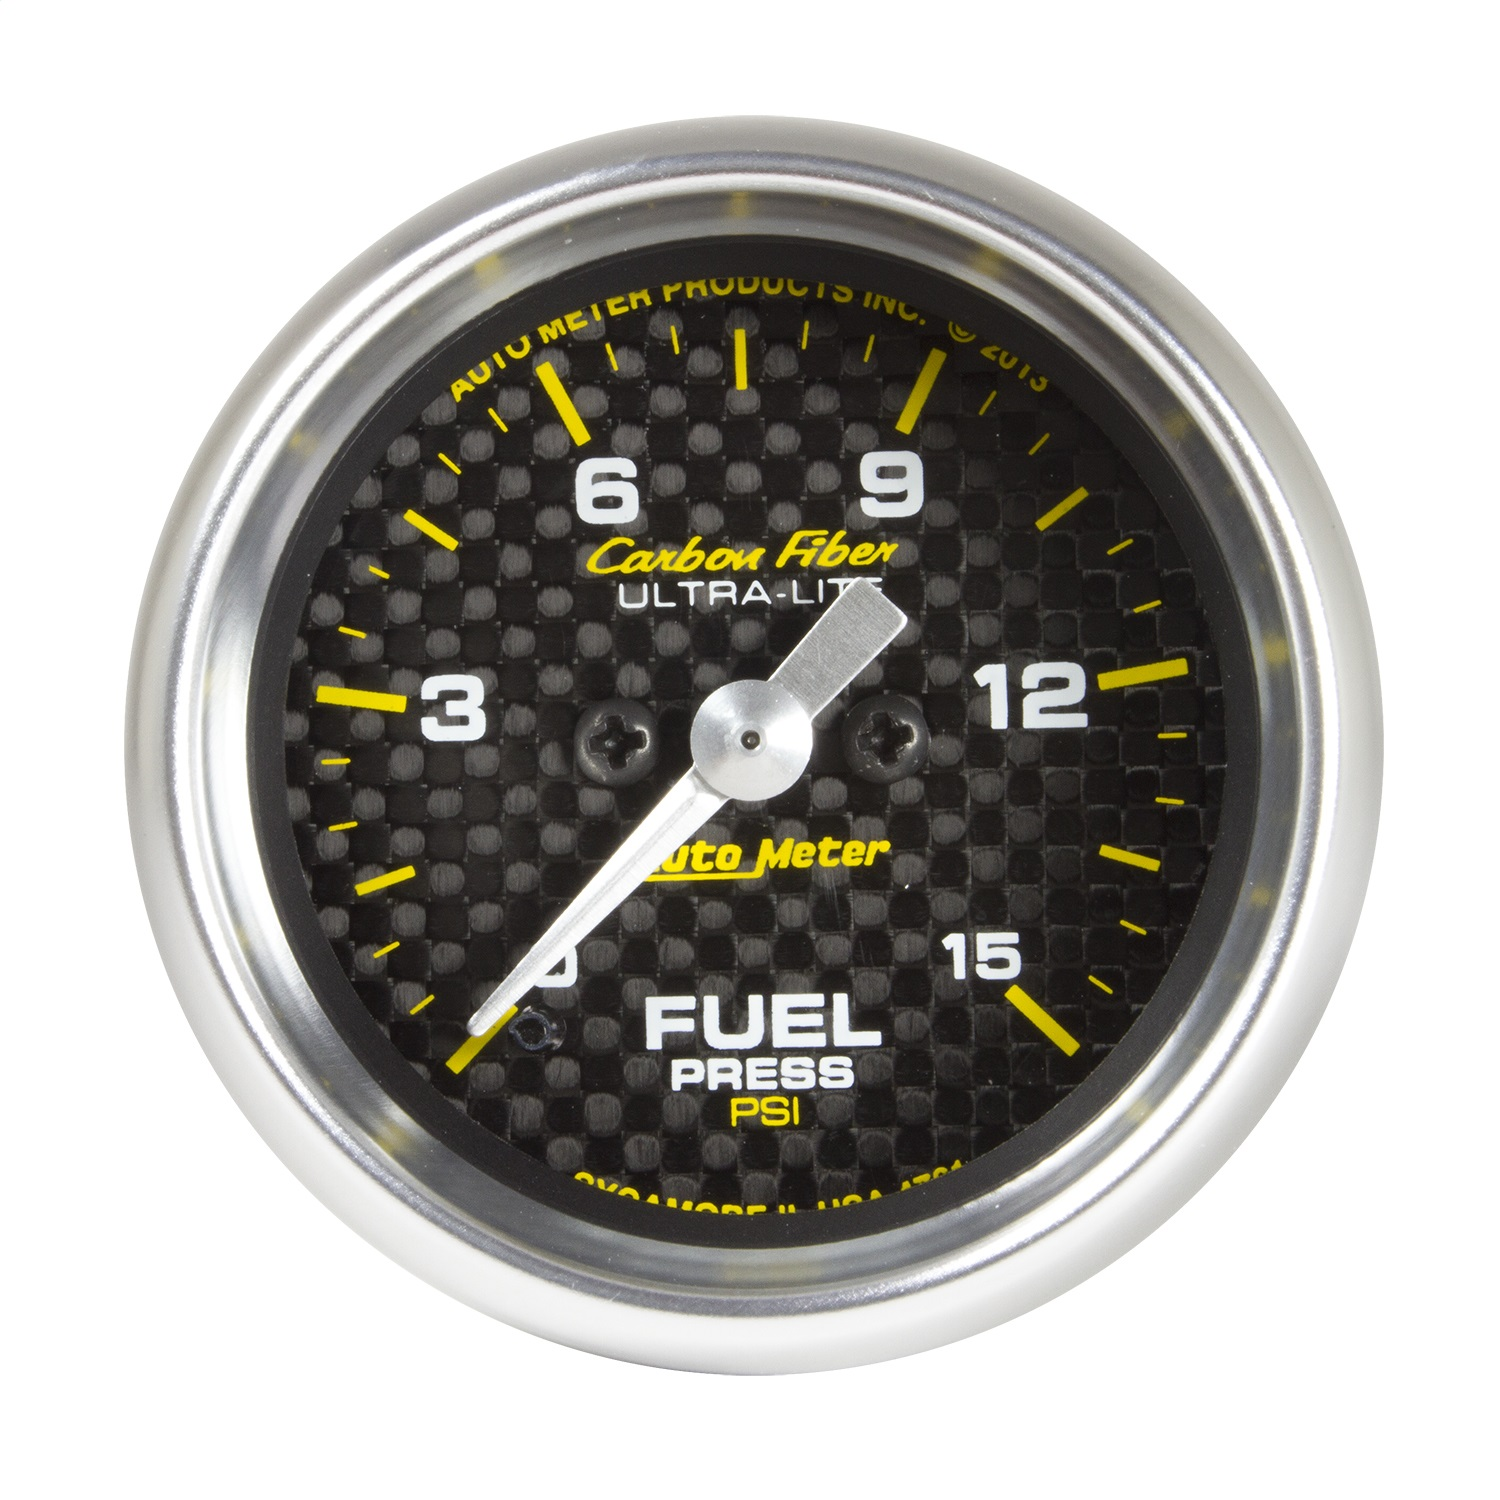 Purchase Auto Meter 4761 Carbon Fiber Electric Fuel